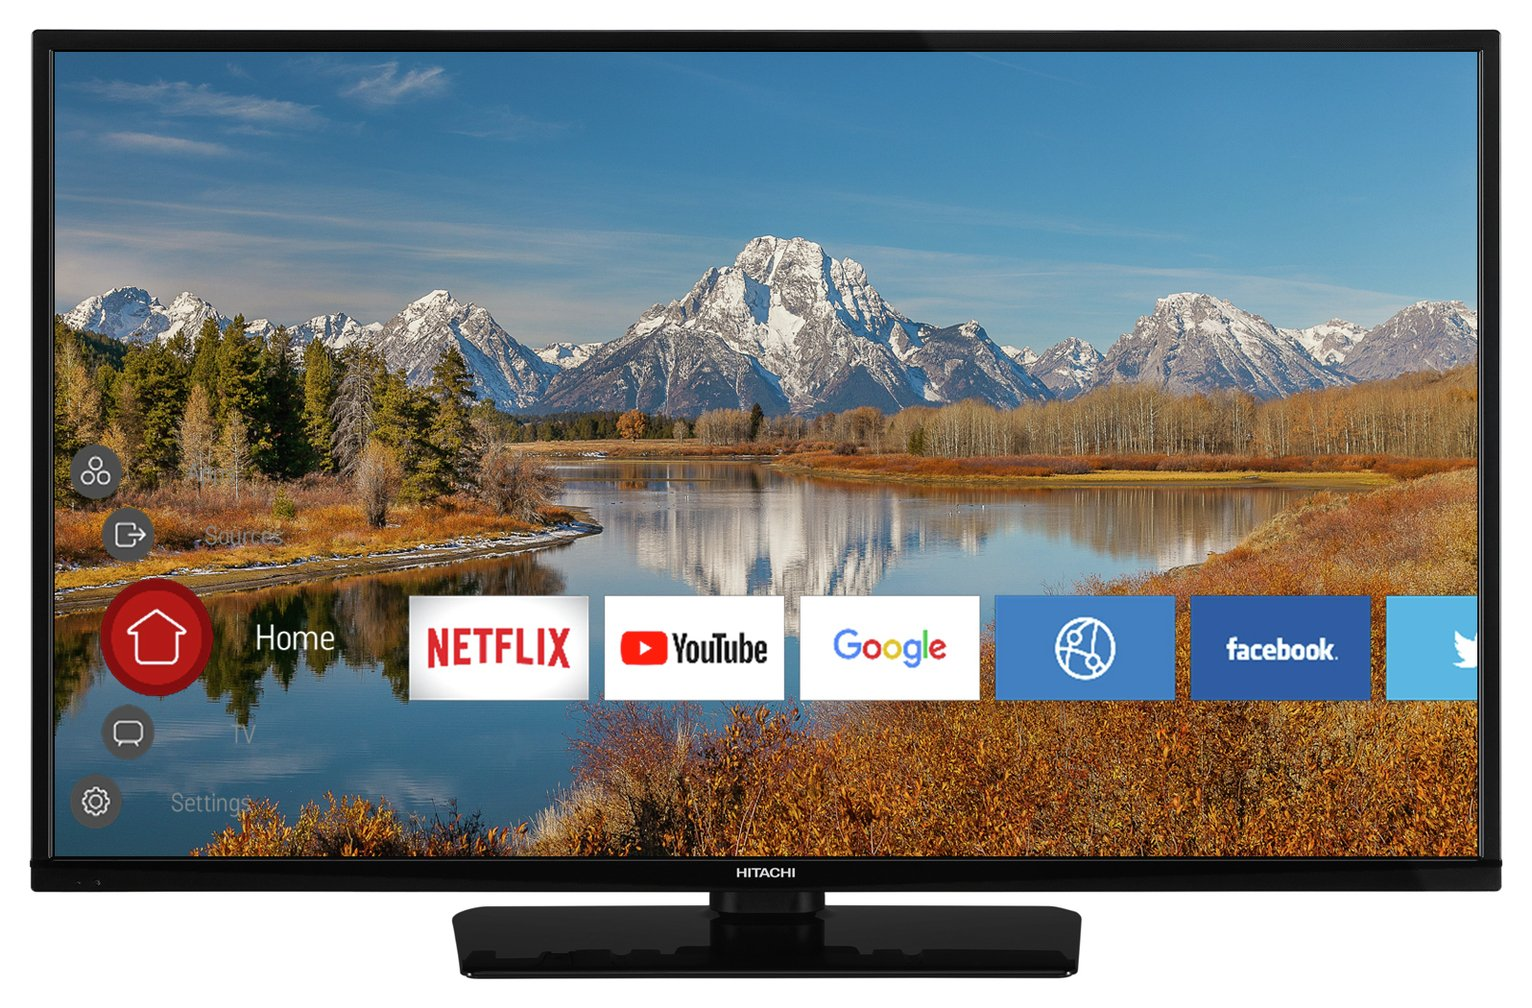 Hitachi 49 Inch Smart Full HD TV from Hitachi